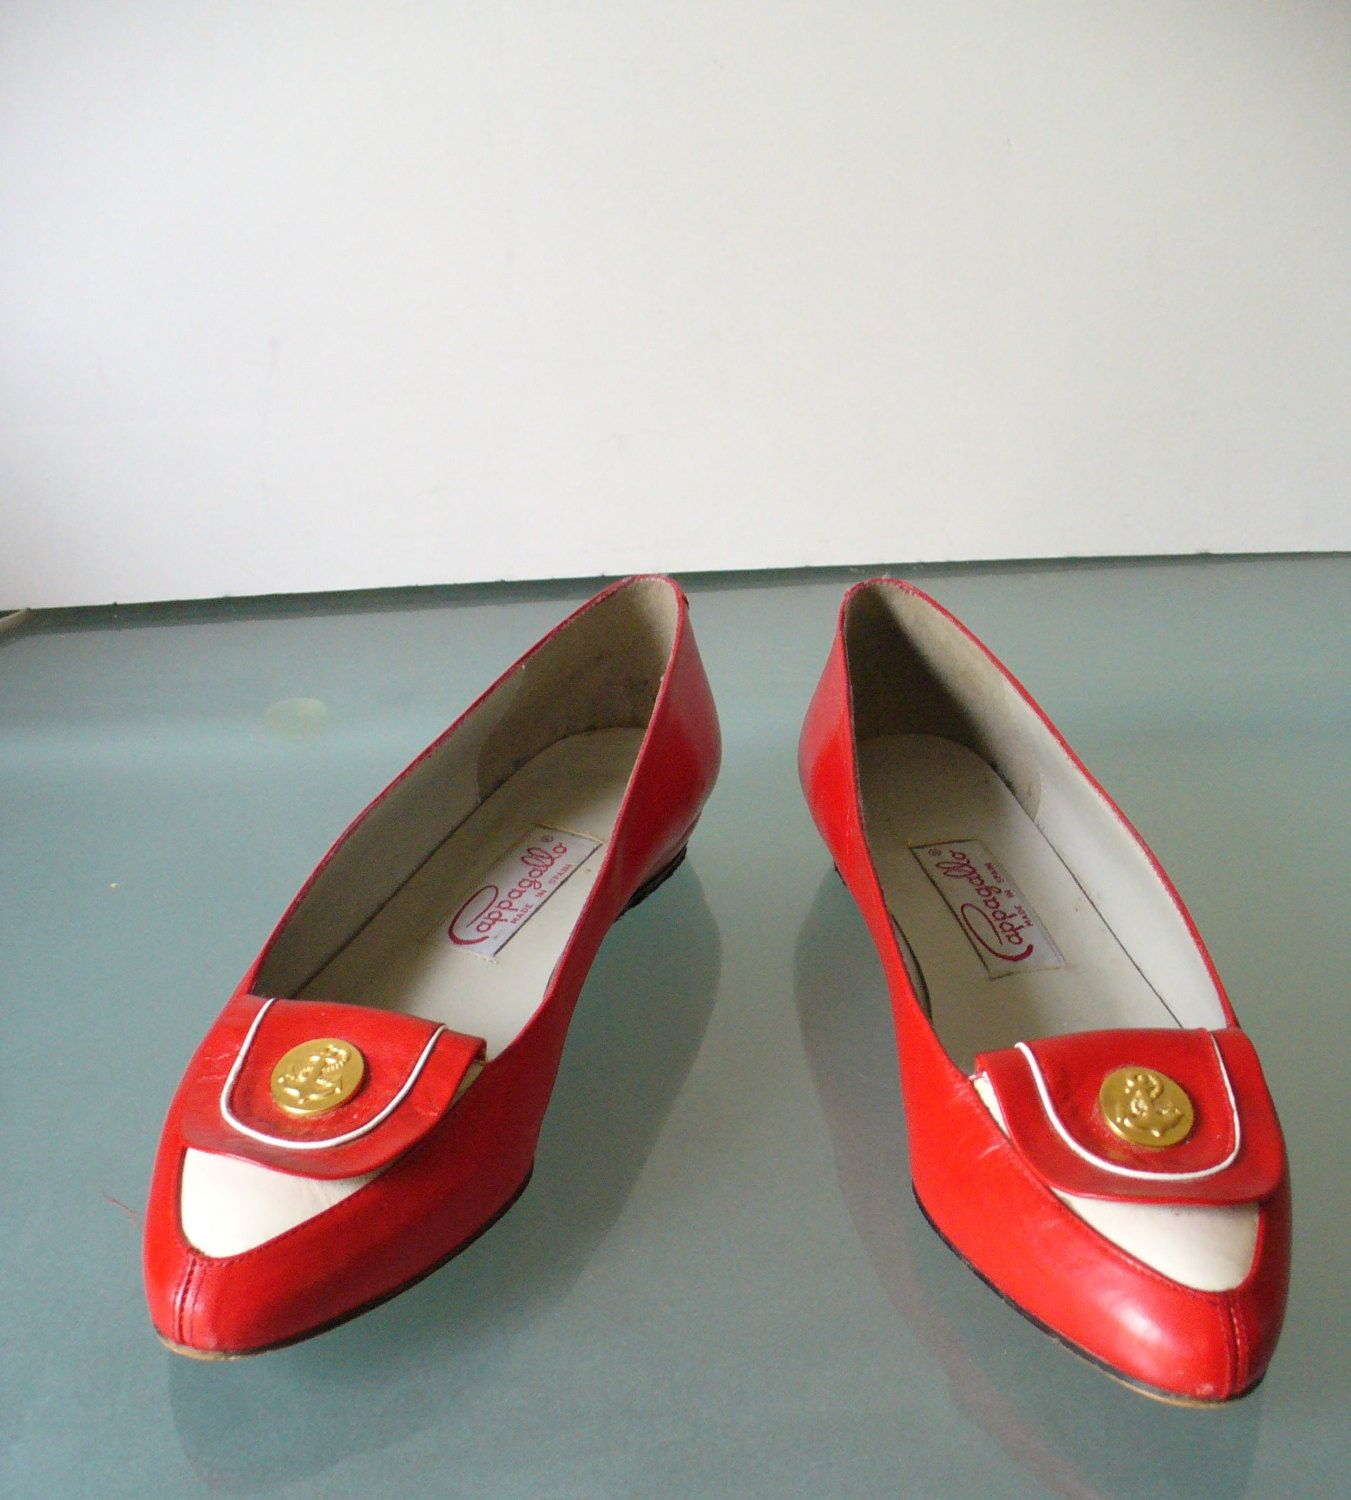 Vintage Red & White Pappagallo  Spectator Pumps Size 7 US by TheOldBagOnline on Etsy